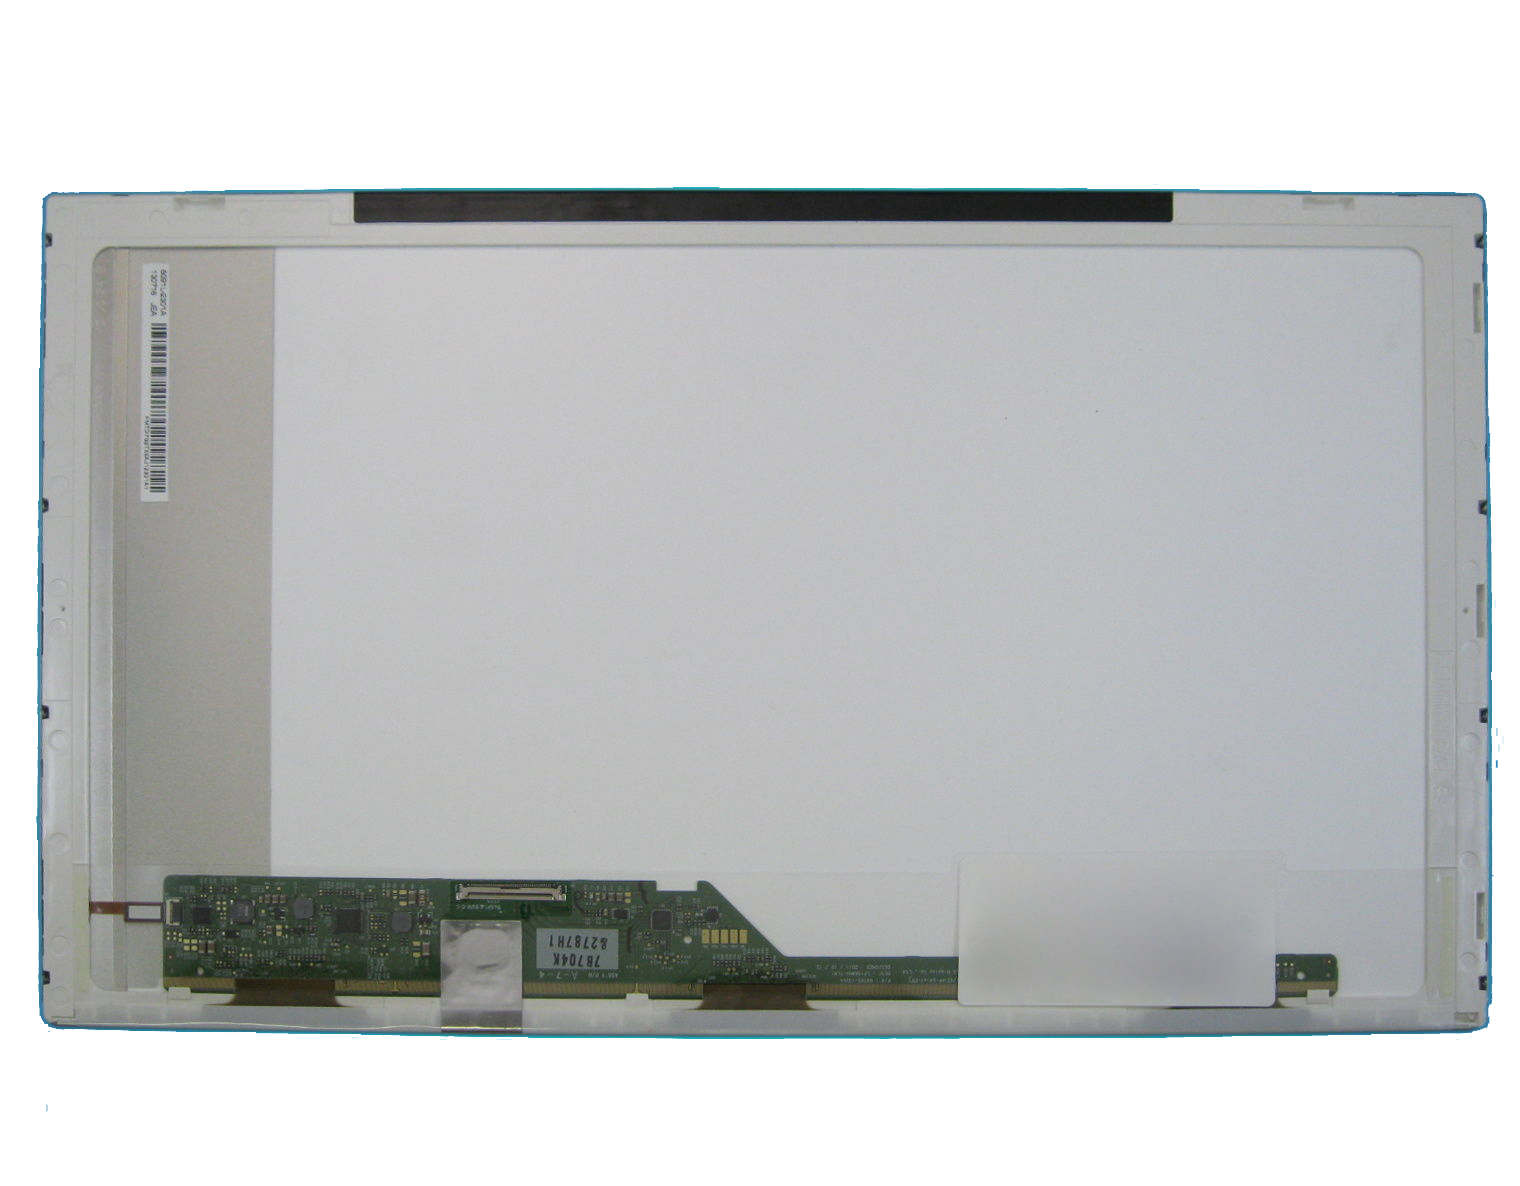 quying laptop lcd screen for dell latitude e5530 e6520 e6530 series 15 6 inch 1920x1080 40pin tk QuYing LAPTOP LCD SCREEN for Acer ASPIRE 5253 5253G 5942G 5935 SERIES (15.6 inch, 1366X768, 40 pin, TK)